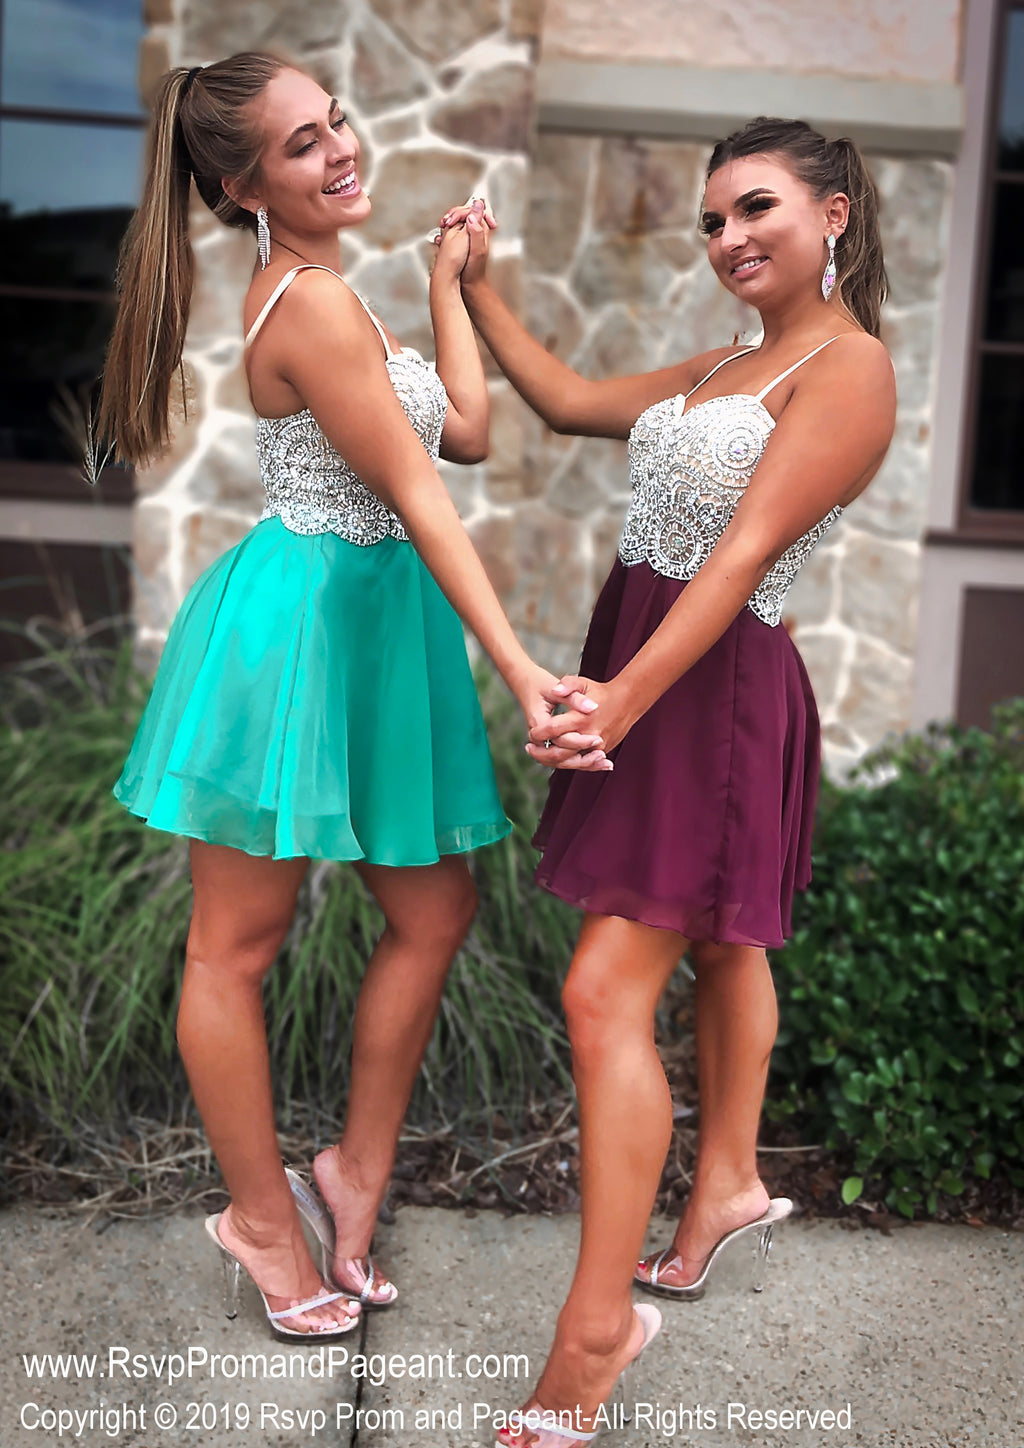 Burgundy or Green Suoer Cute Beaded Short Dress / Rsvp Prom and Pageant / Atlanta Prom Store / Best Homecoming Dresses / Promheaven